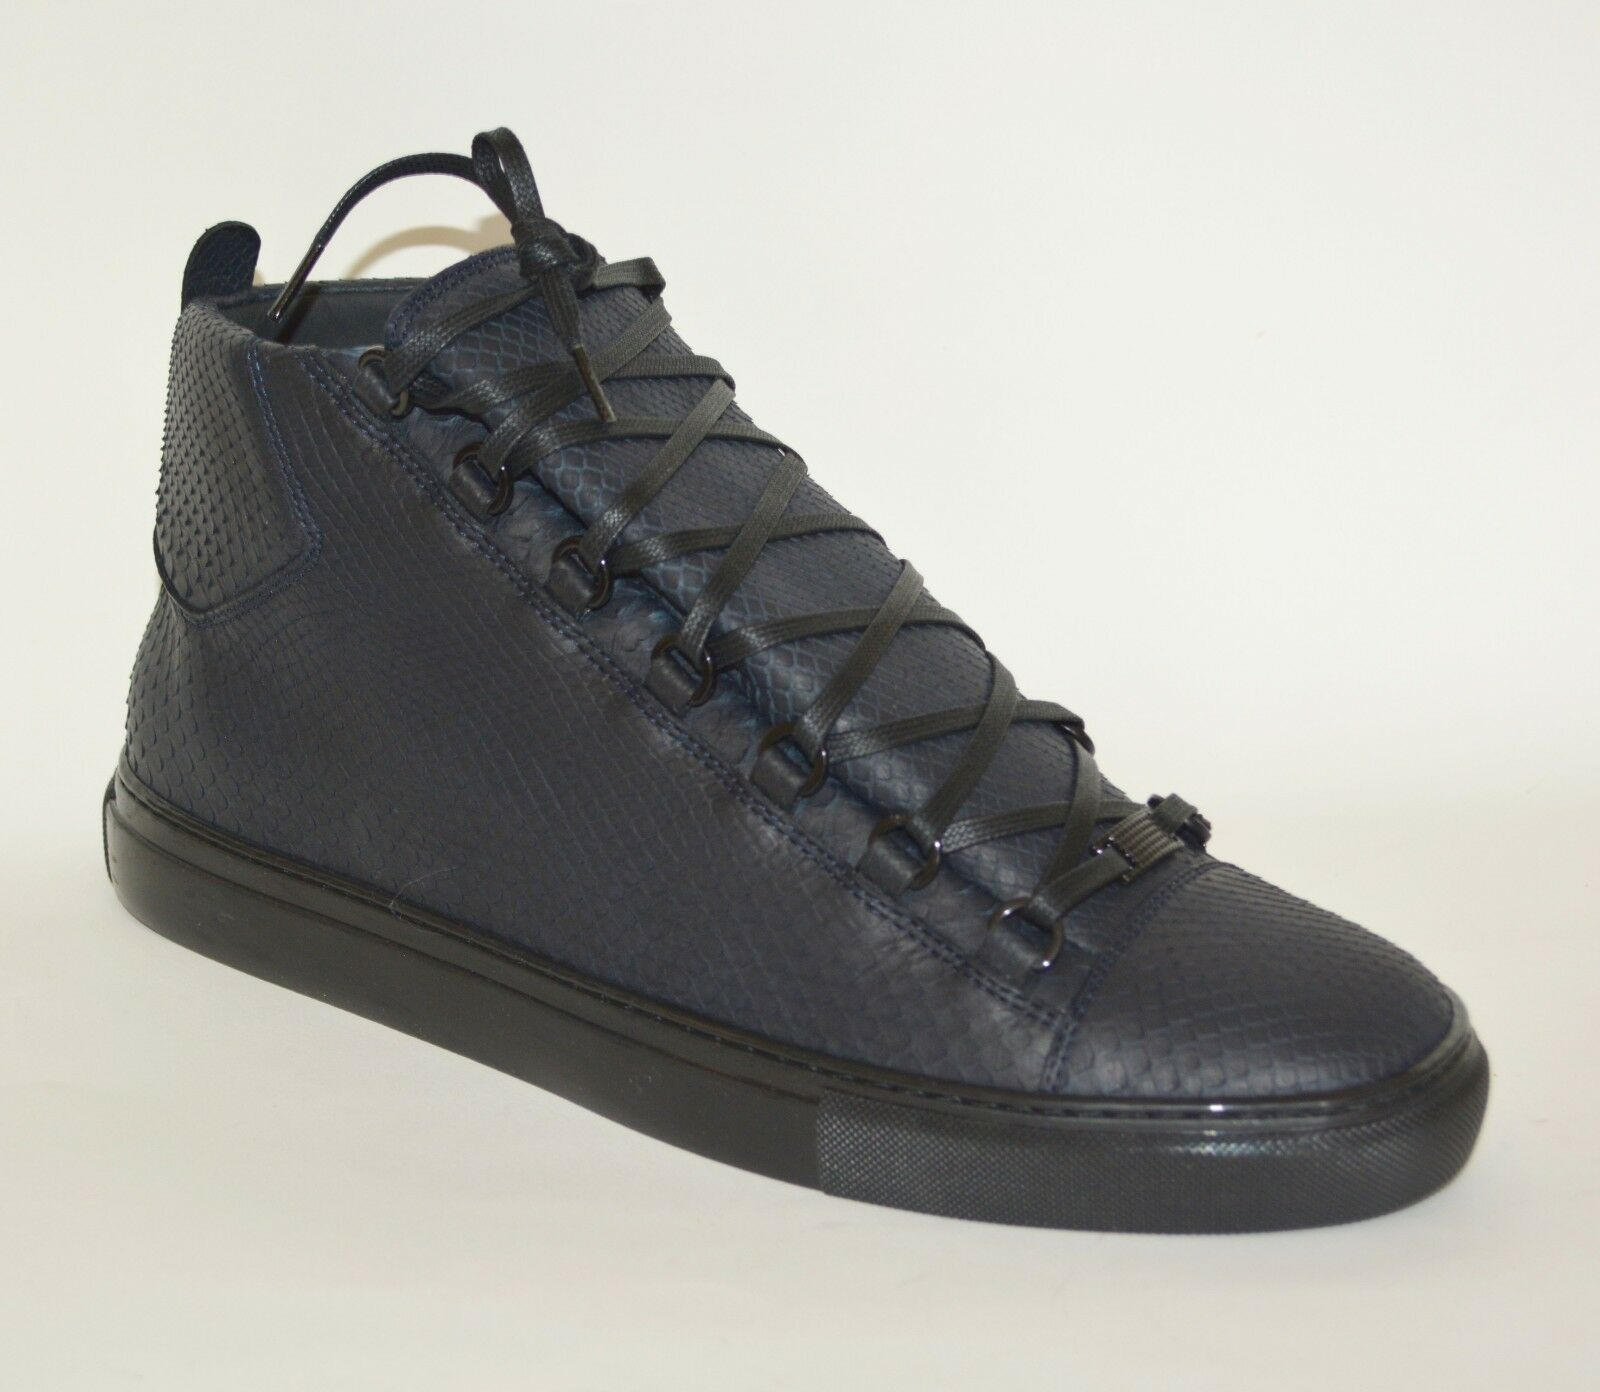 NEW BALENCIAGA HITOP PYTHON LEATHER SNEAKERS US 14 MENS